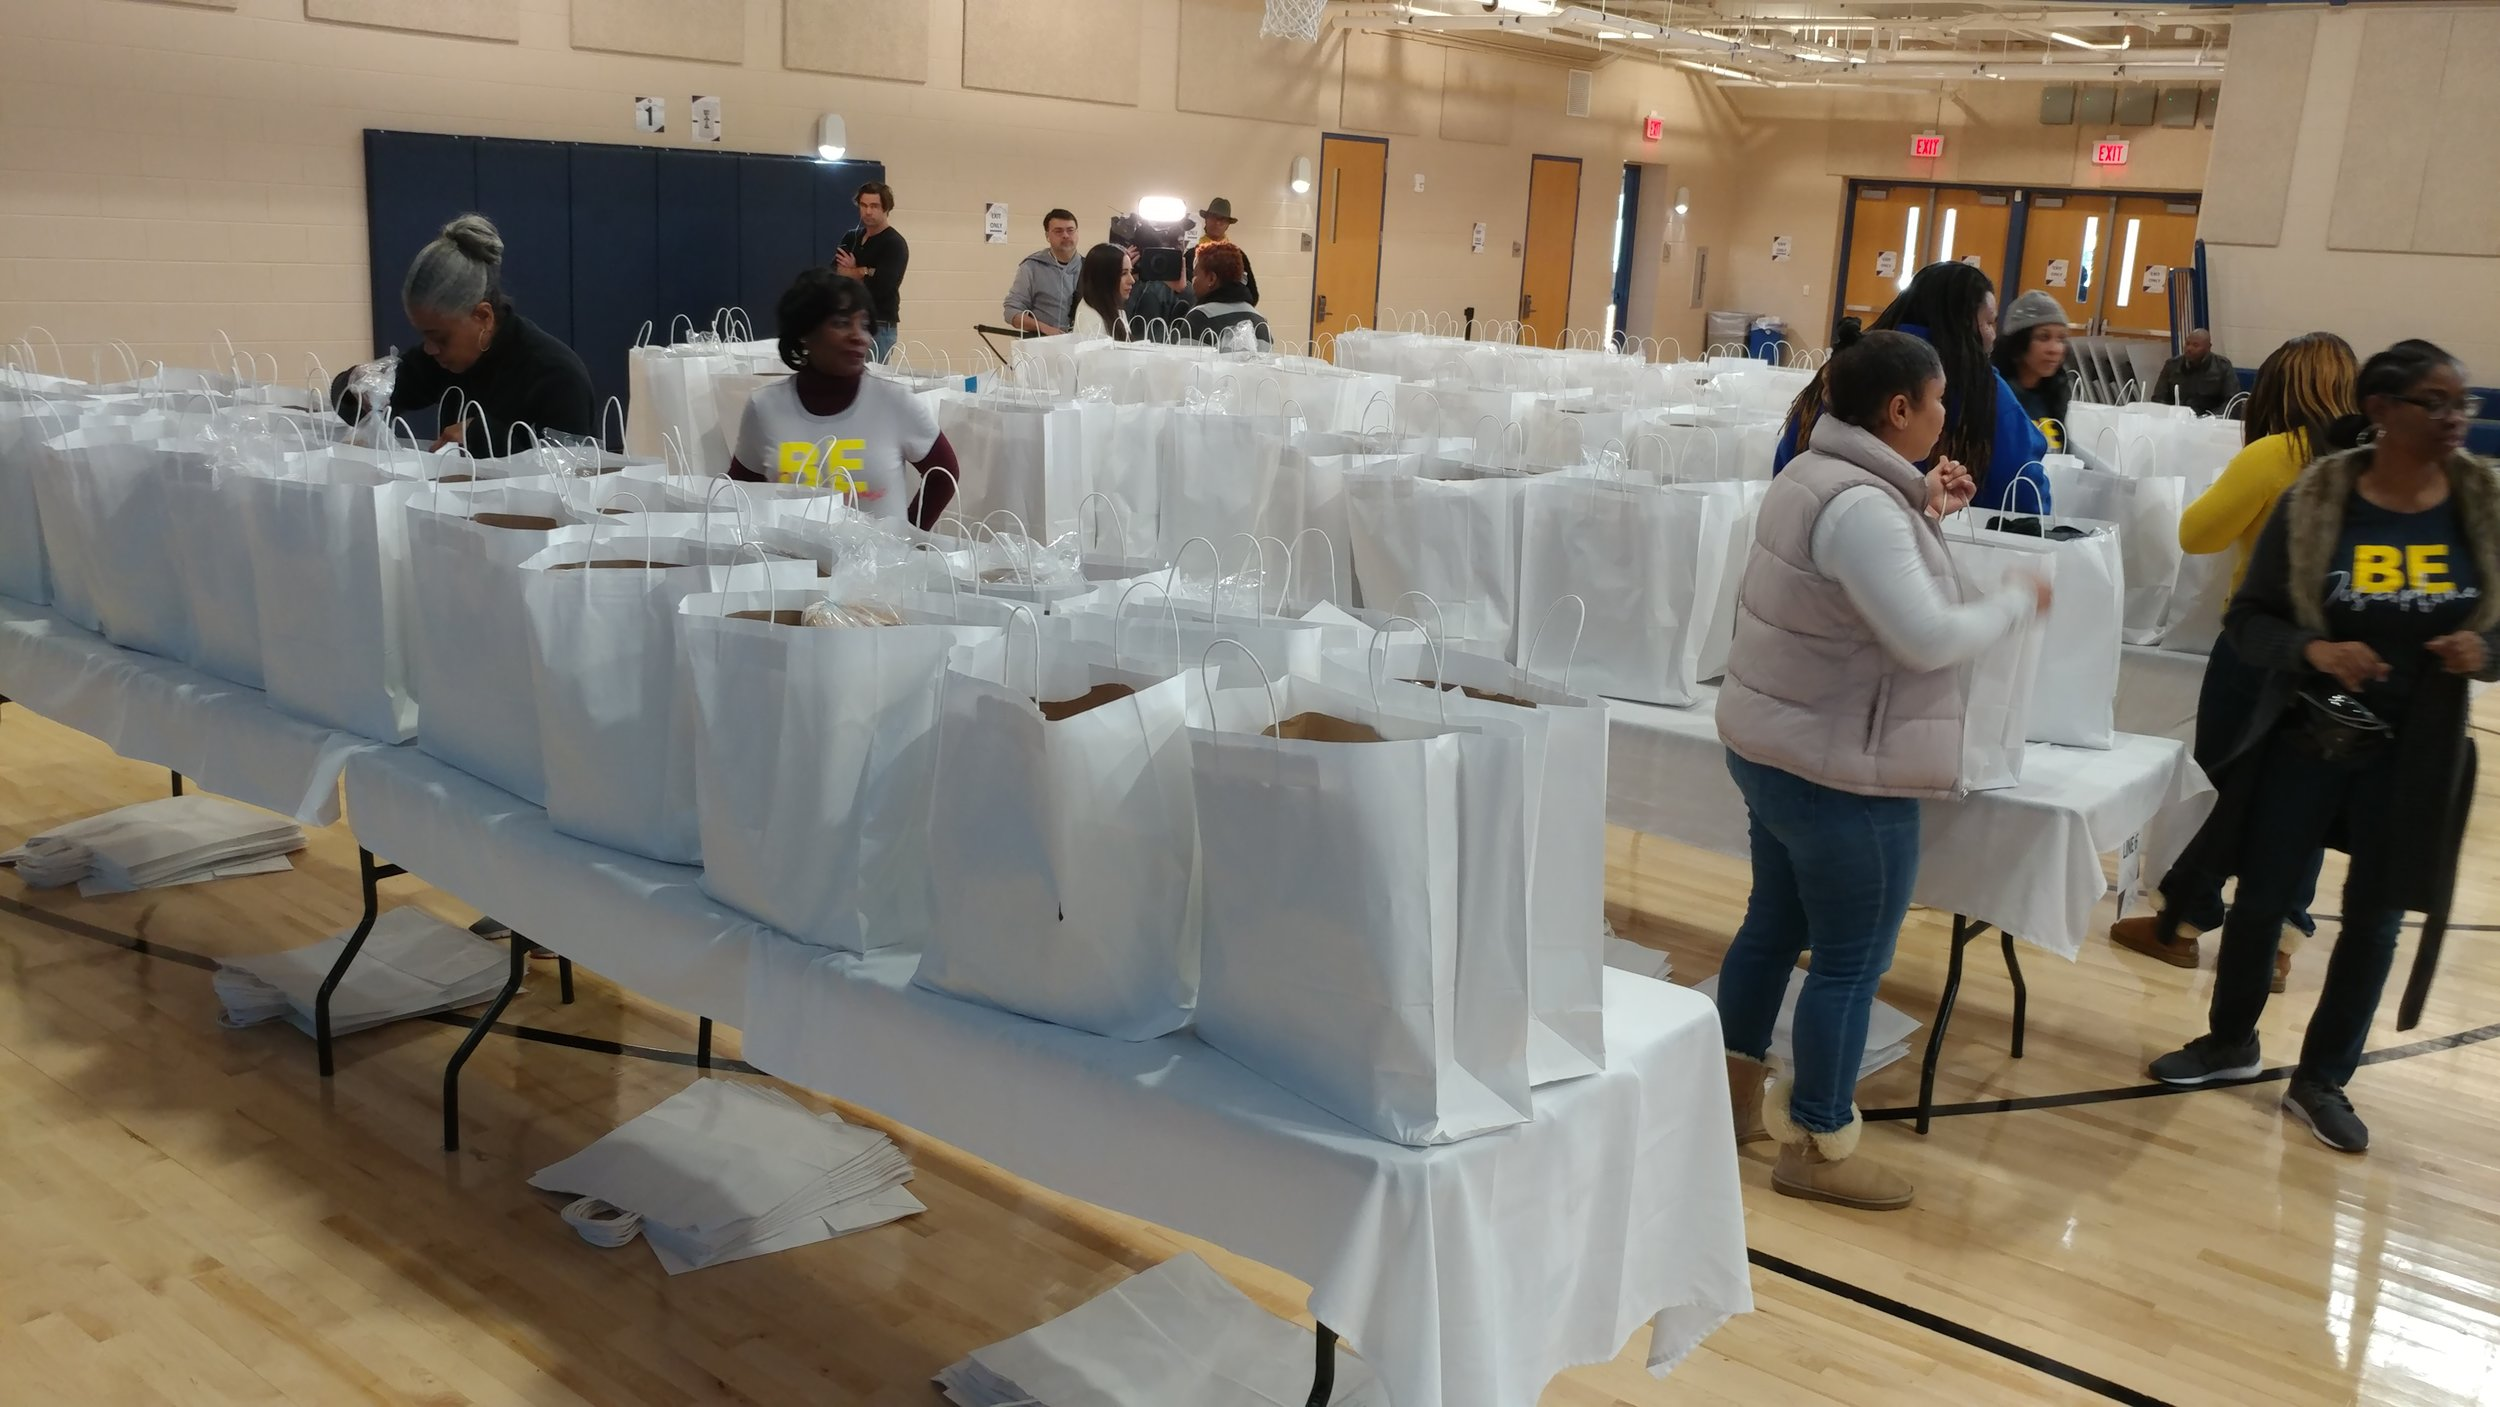 Ready to give groceries to 3,000 families at the First Baptist Church of Glenarden Family Life Center in Upper Marlboro. PHOTO: RAOUL DENNIS // PRINCE GEORGE'S SUITE MAGAZINE & MEDIA